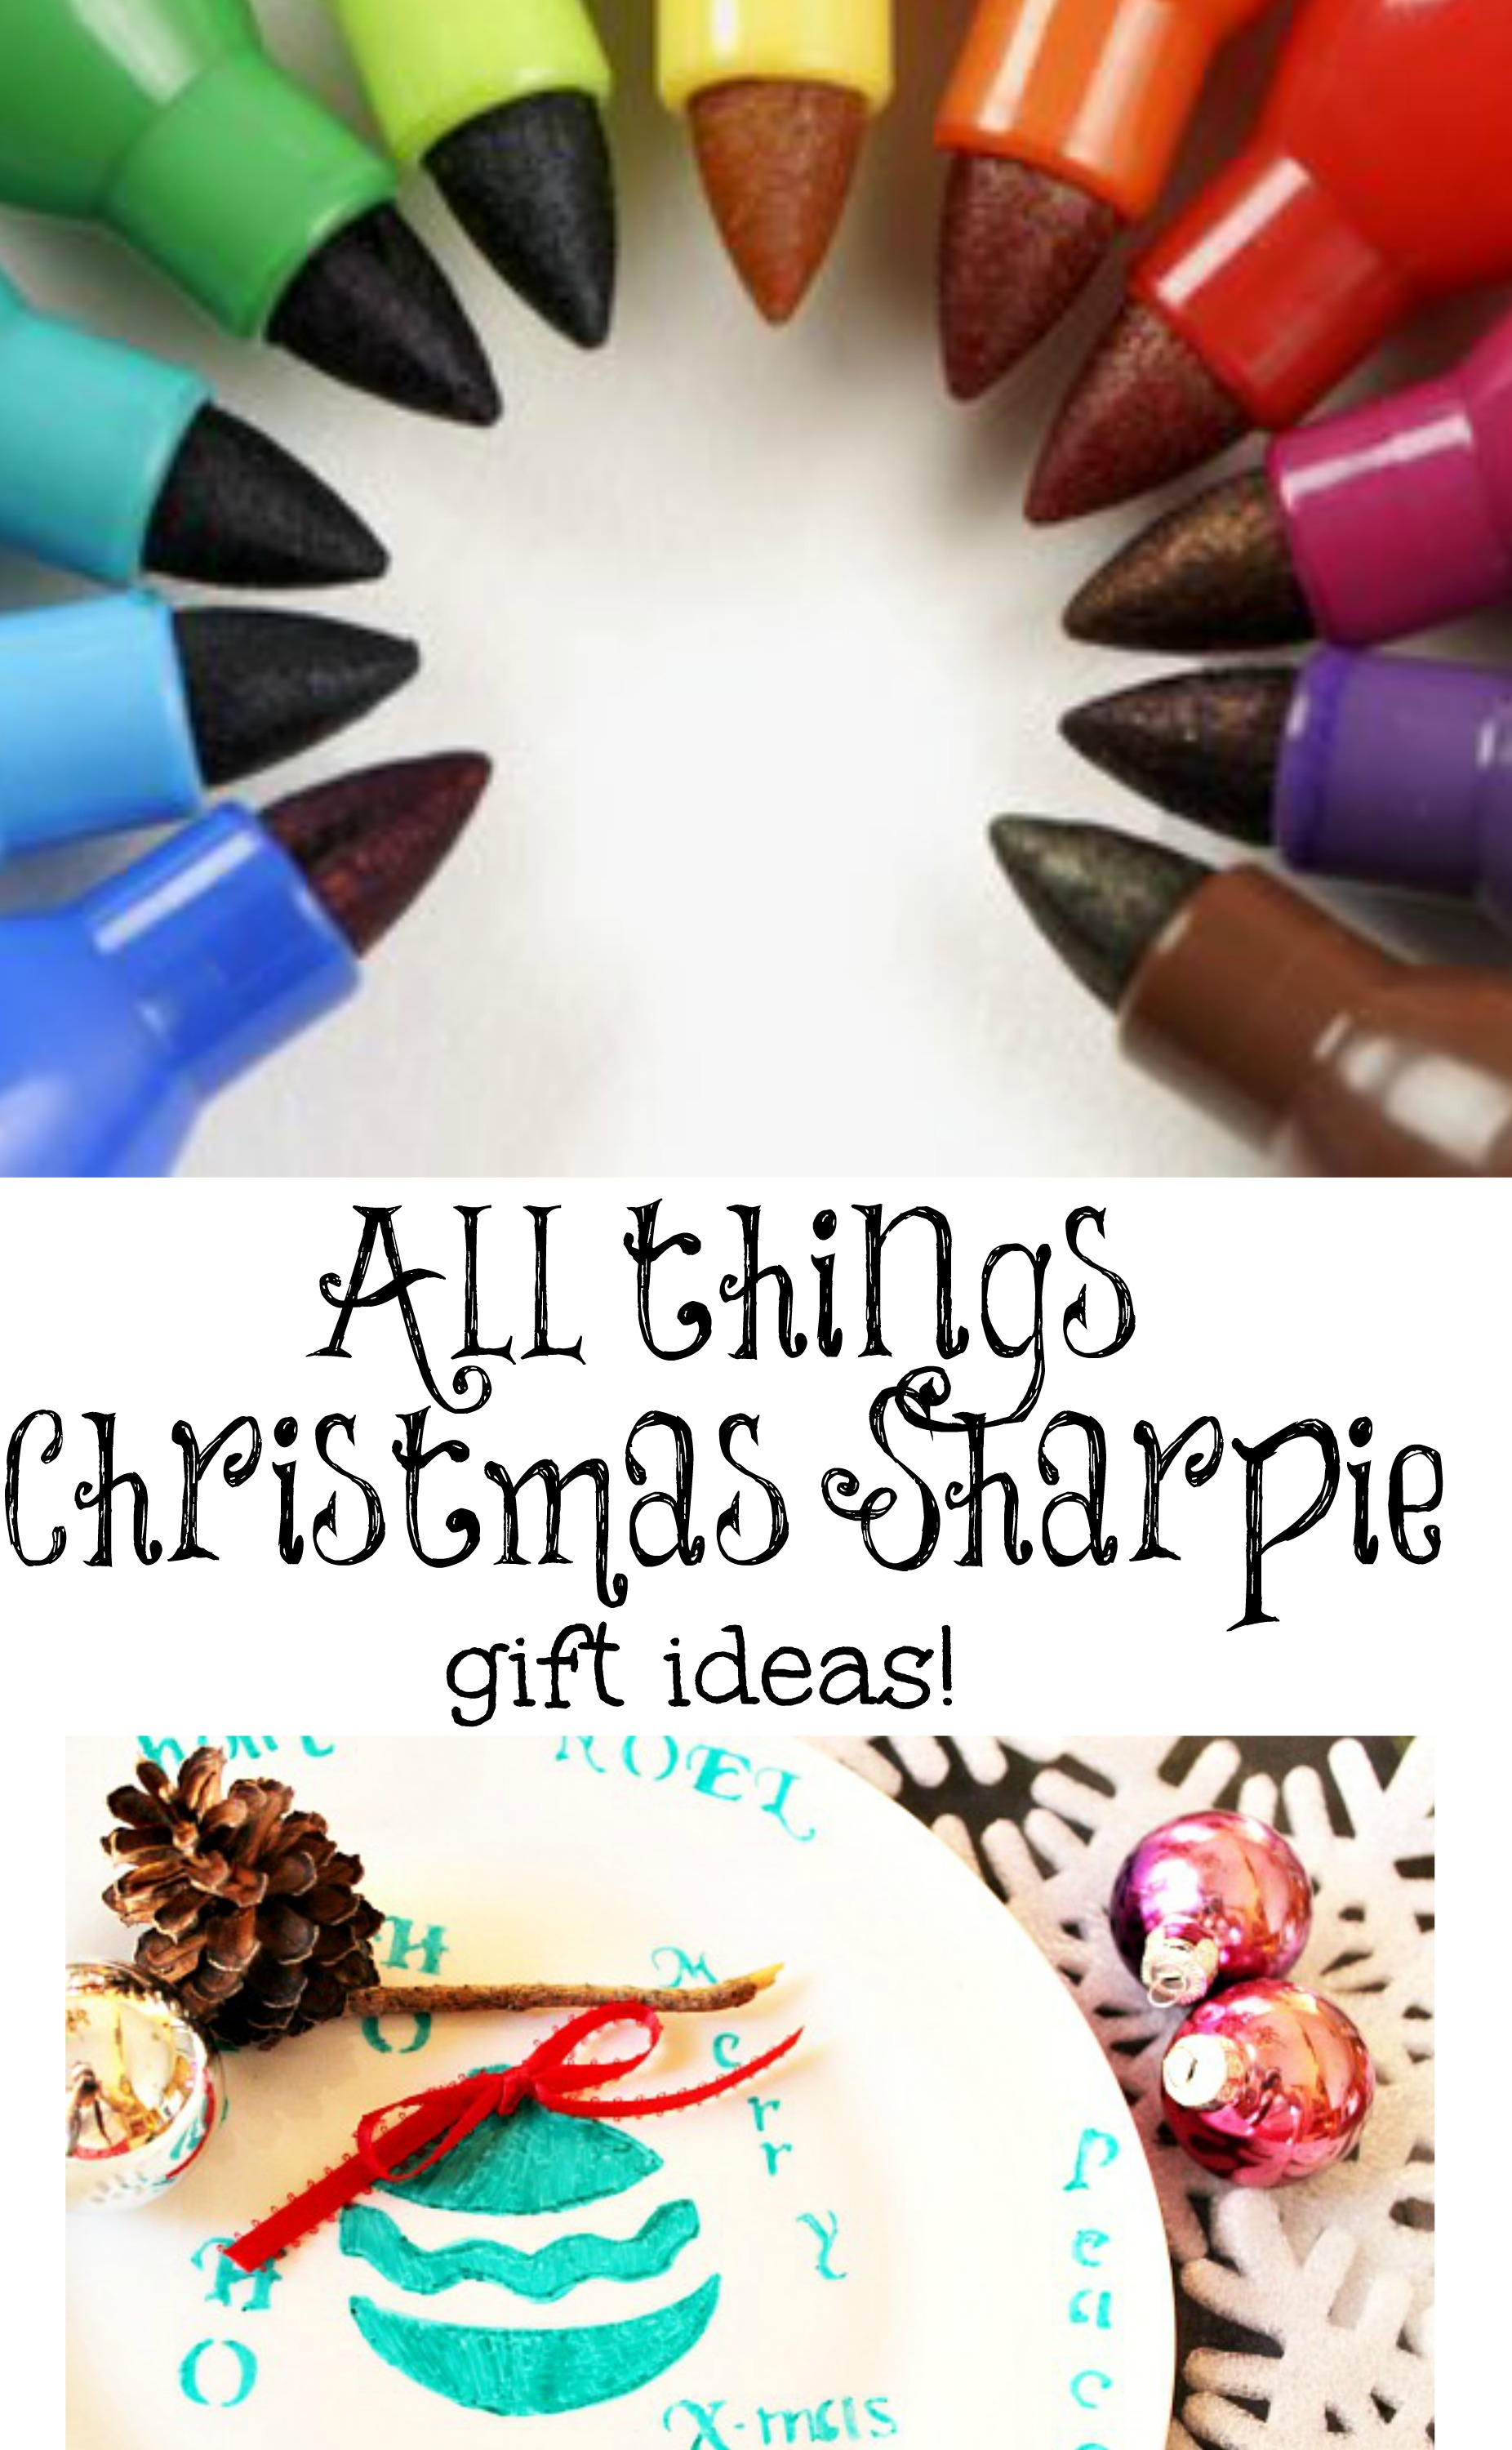 All things Christmas sharpie gift ideas